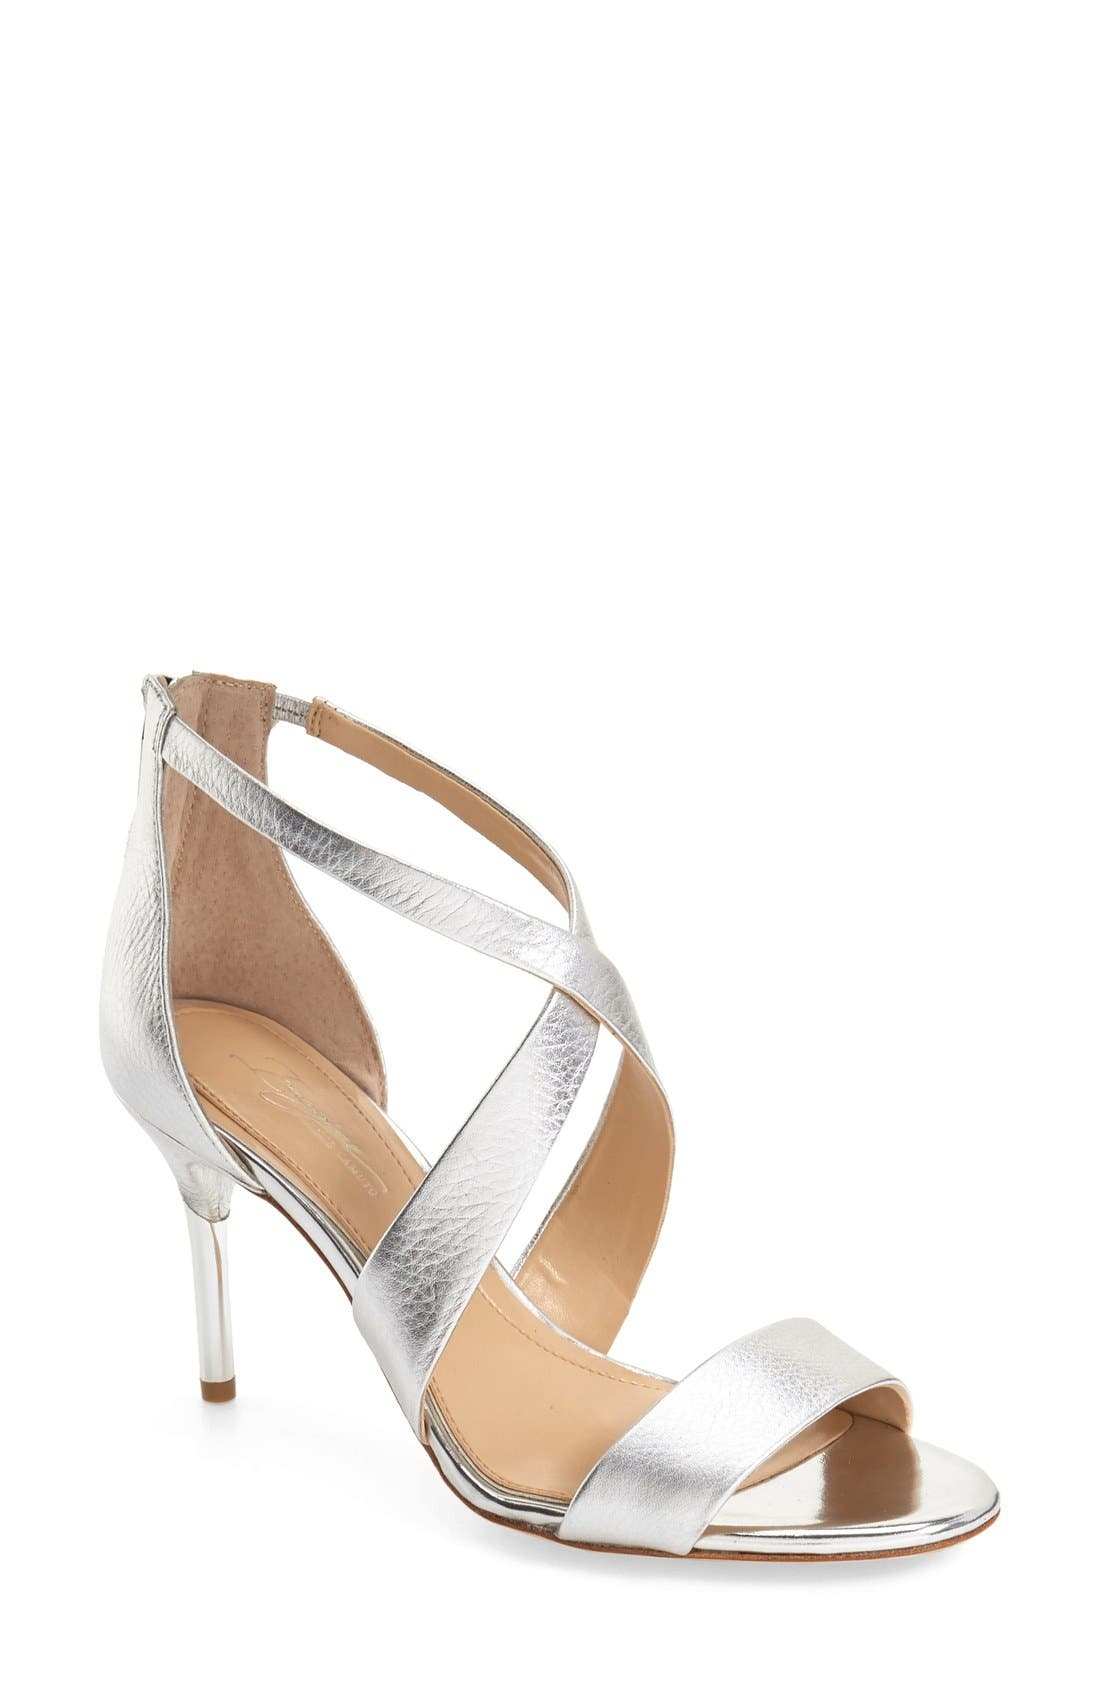 'Pascal 2' Strappy Evening Sandal,                         Main,                         color, PLATINUM LEATHER